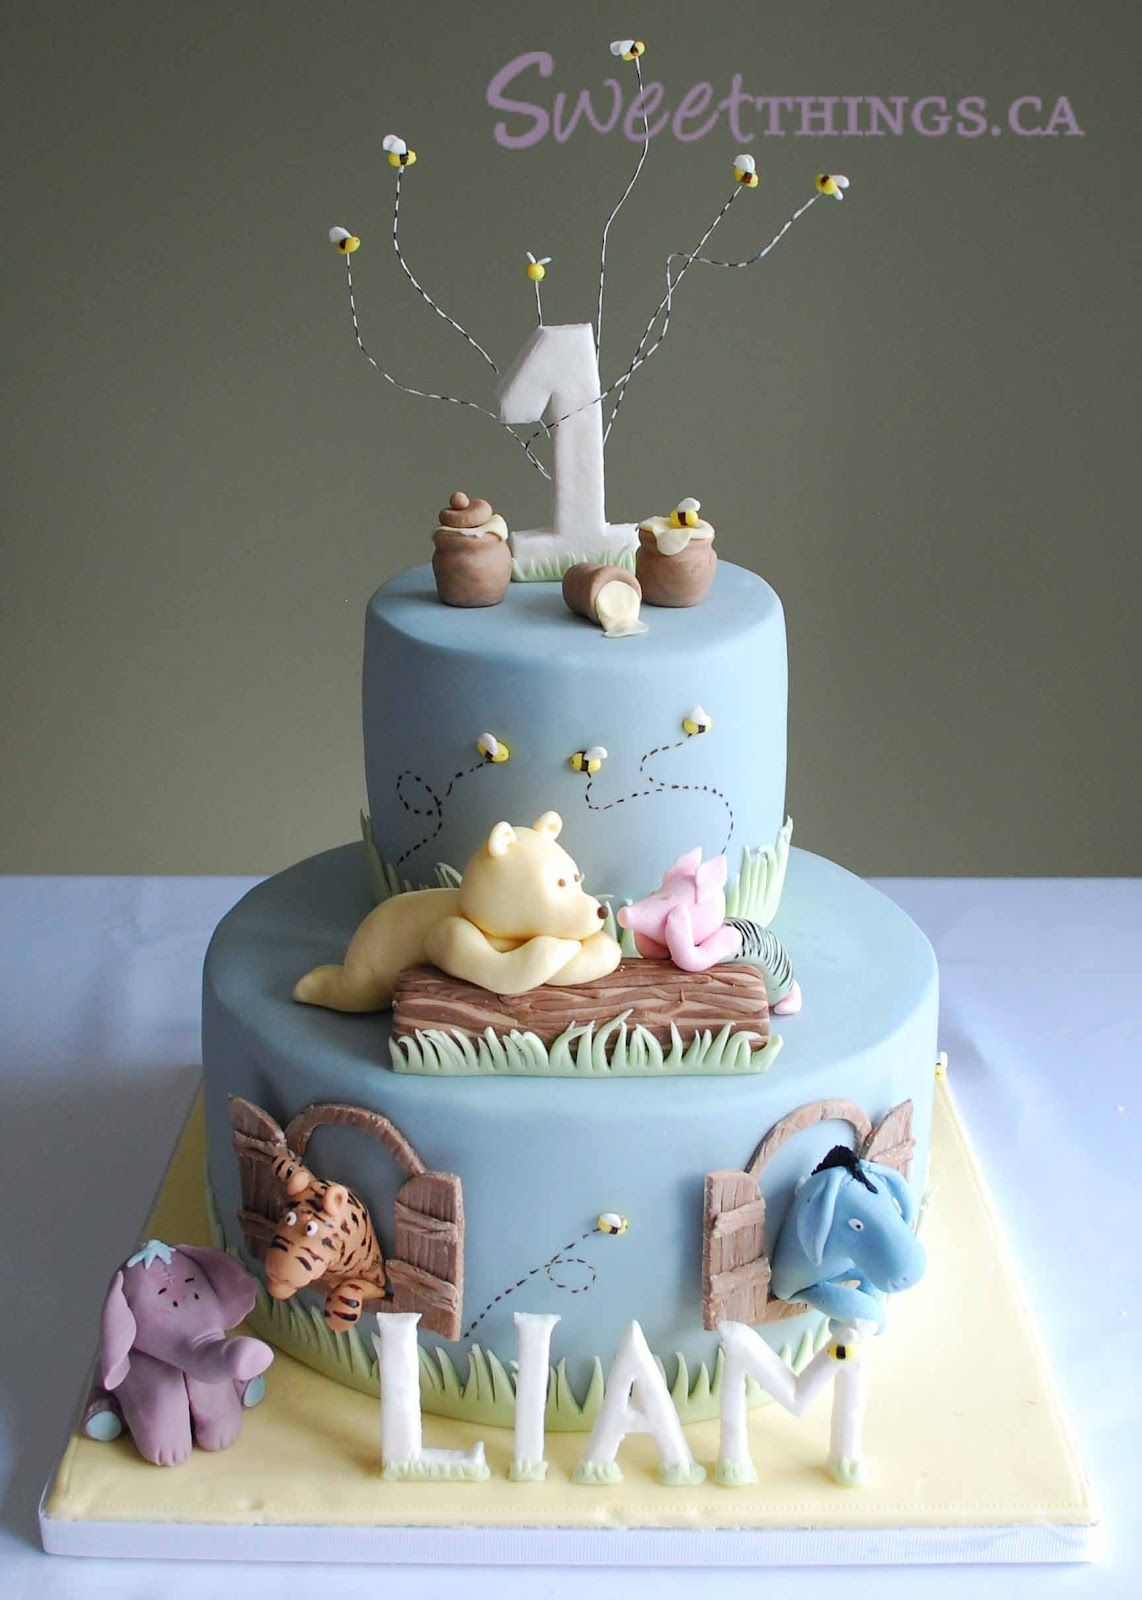 one year old birthday cakes for boys cake with vanilla swiss on birthday cake with name yaman